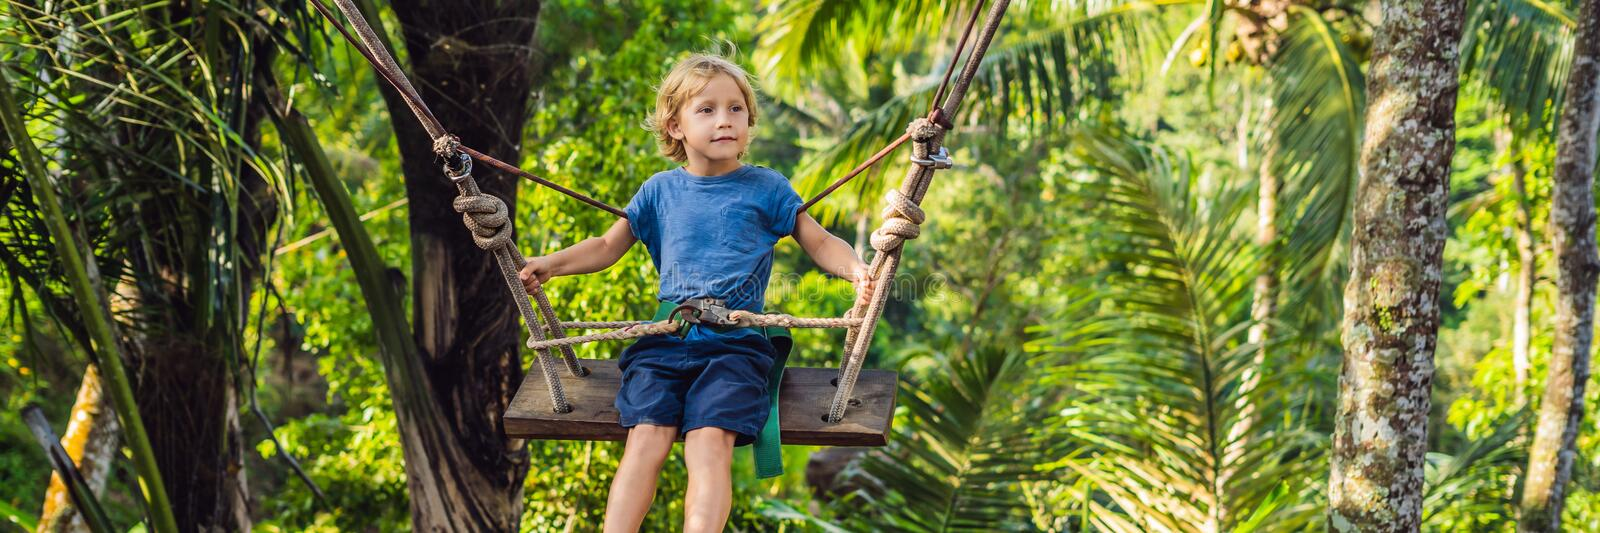 A boy on a swing over the jungle, Bali BANNER, long format. A boy on a swing over the jungle, Bali. BANNER, long format stock images